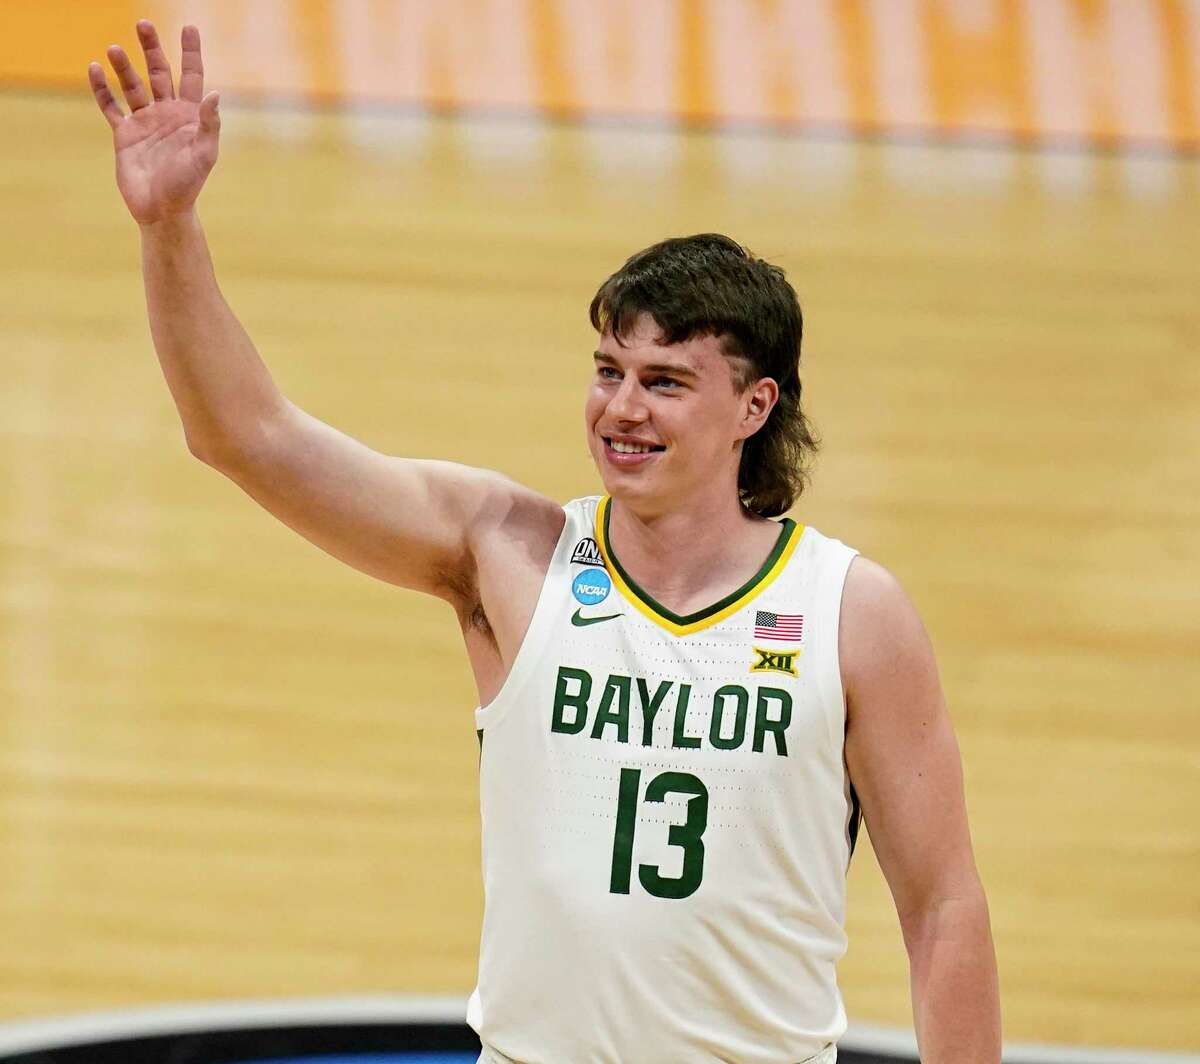 Baylor guard Jackson Moffatt (13) celebrates after a 76-63 win over Wisconsin in a second-round game in the NCAA men's college basketball tournament at Hinkle Fieldhouse in Indianapolis, Sunday, March 21, 2021. (AP Photo/Michael Conroy)